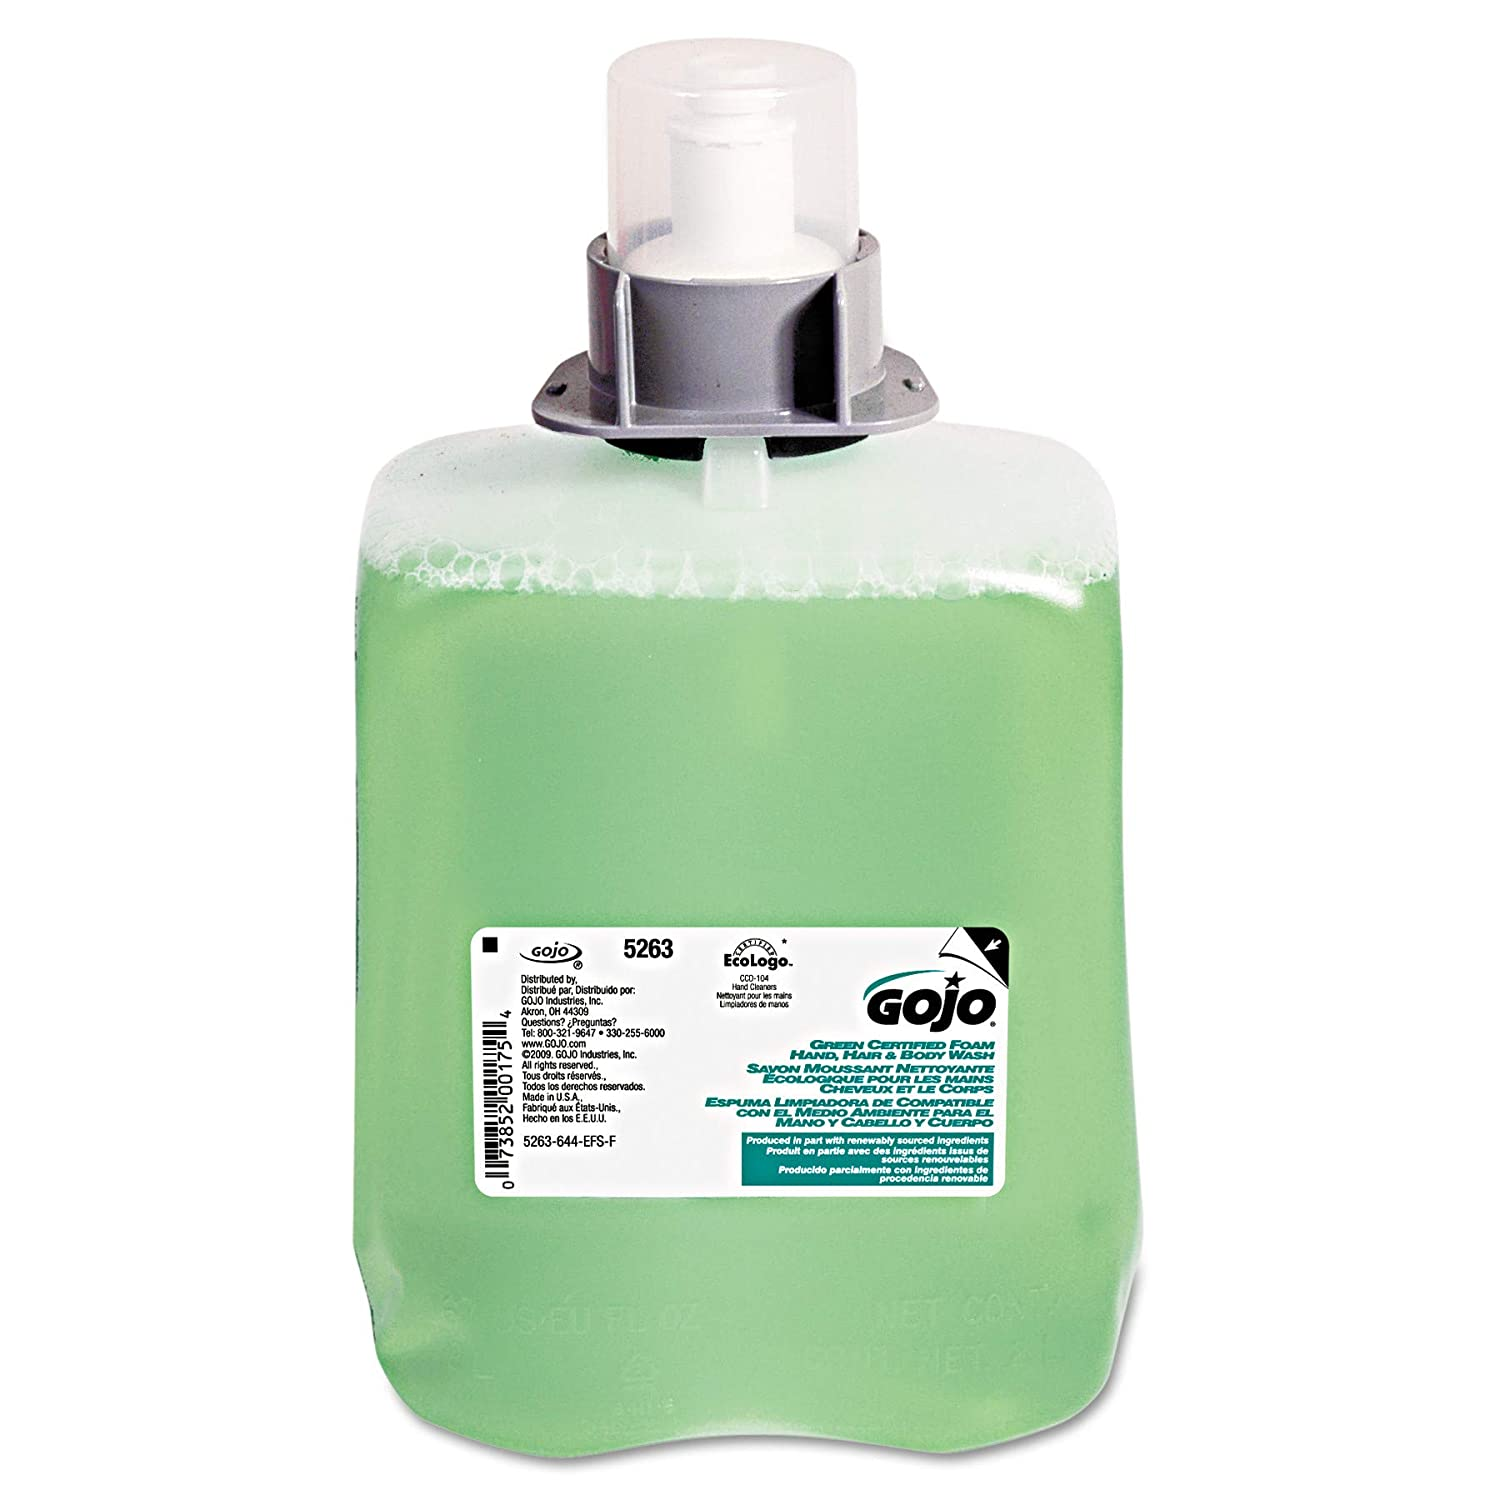 Gojo 5263-02 Green Certified Foam Hand Hair and Body Wash Fmx-20, 2000 Ml Refill, 2-Pack GOJO / Purell CA